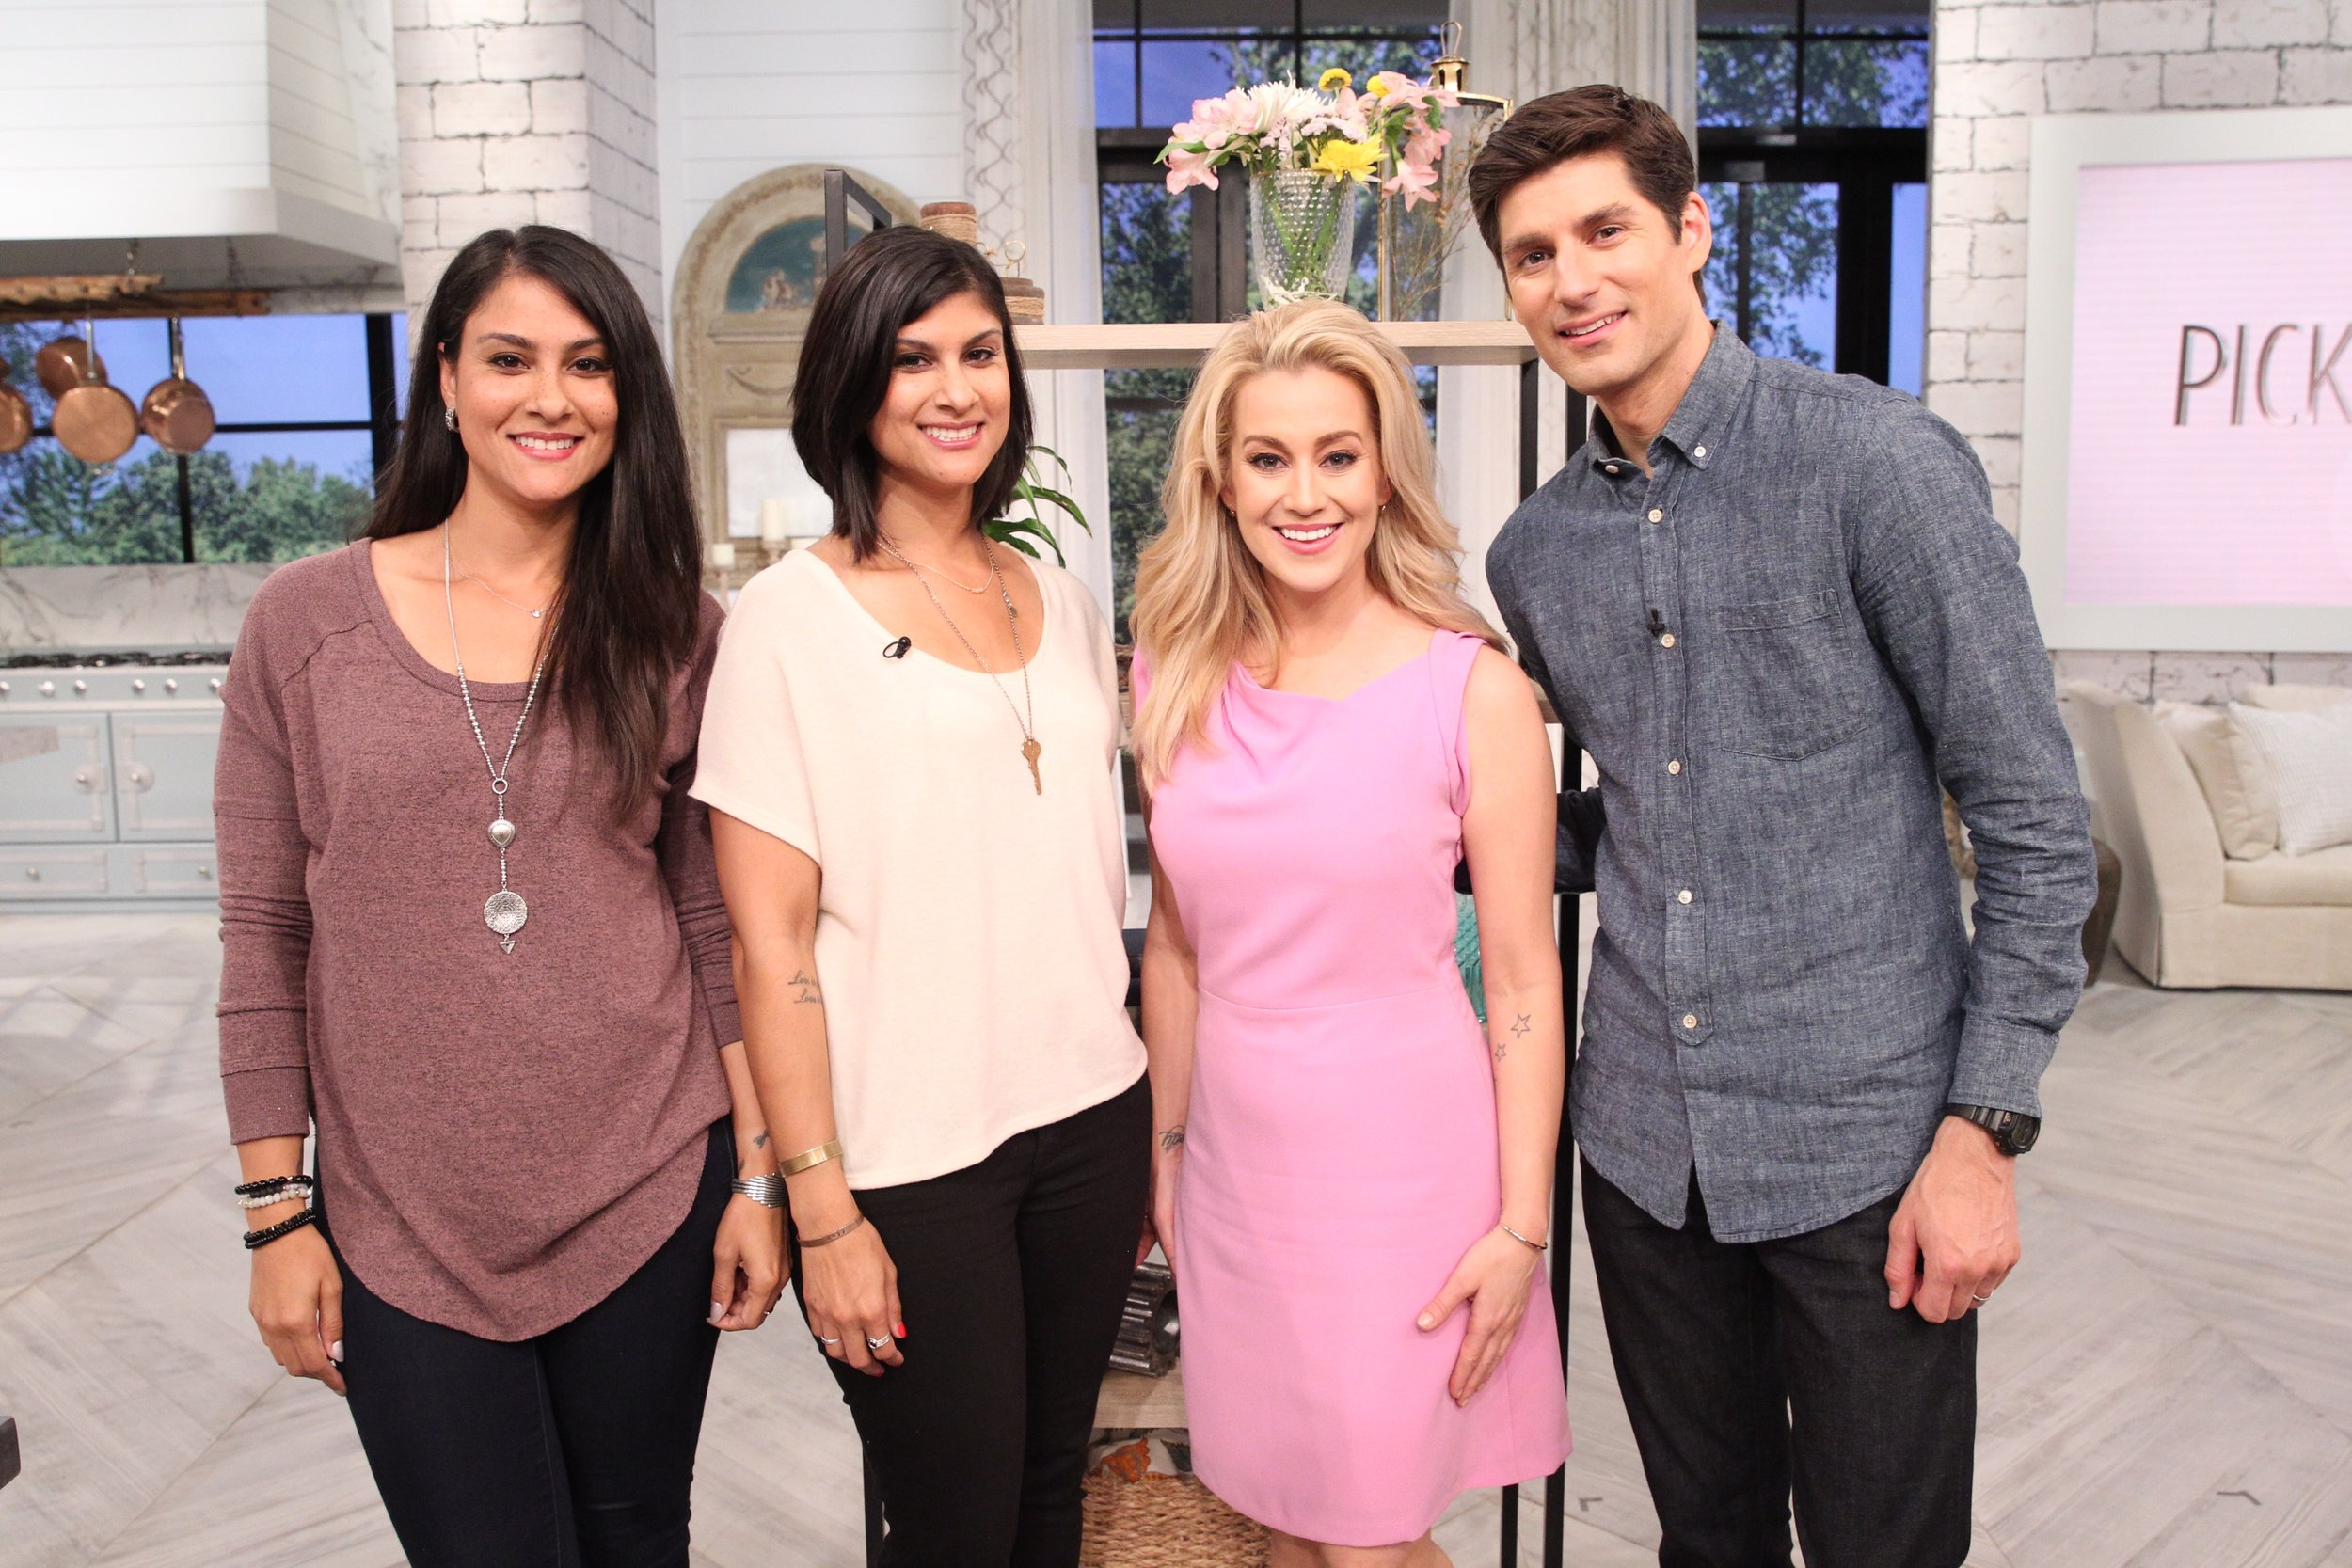 Pickler And Ben Appearance: Live Plant Wall and Shelf Design